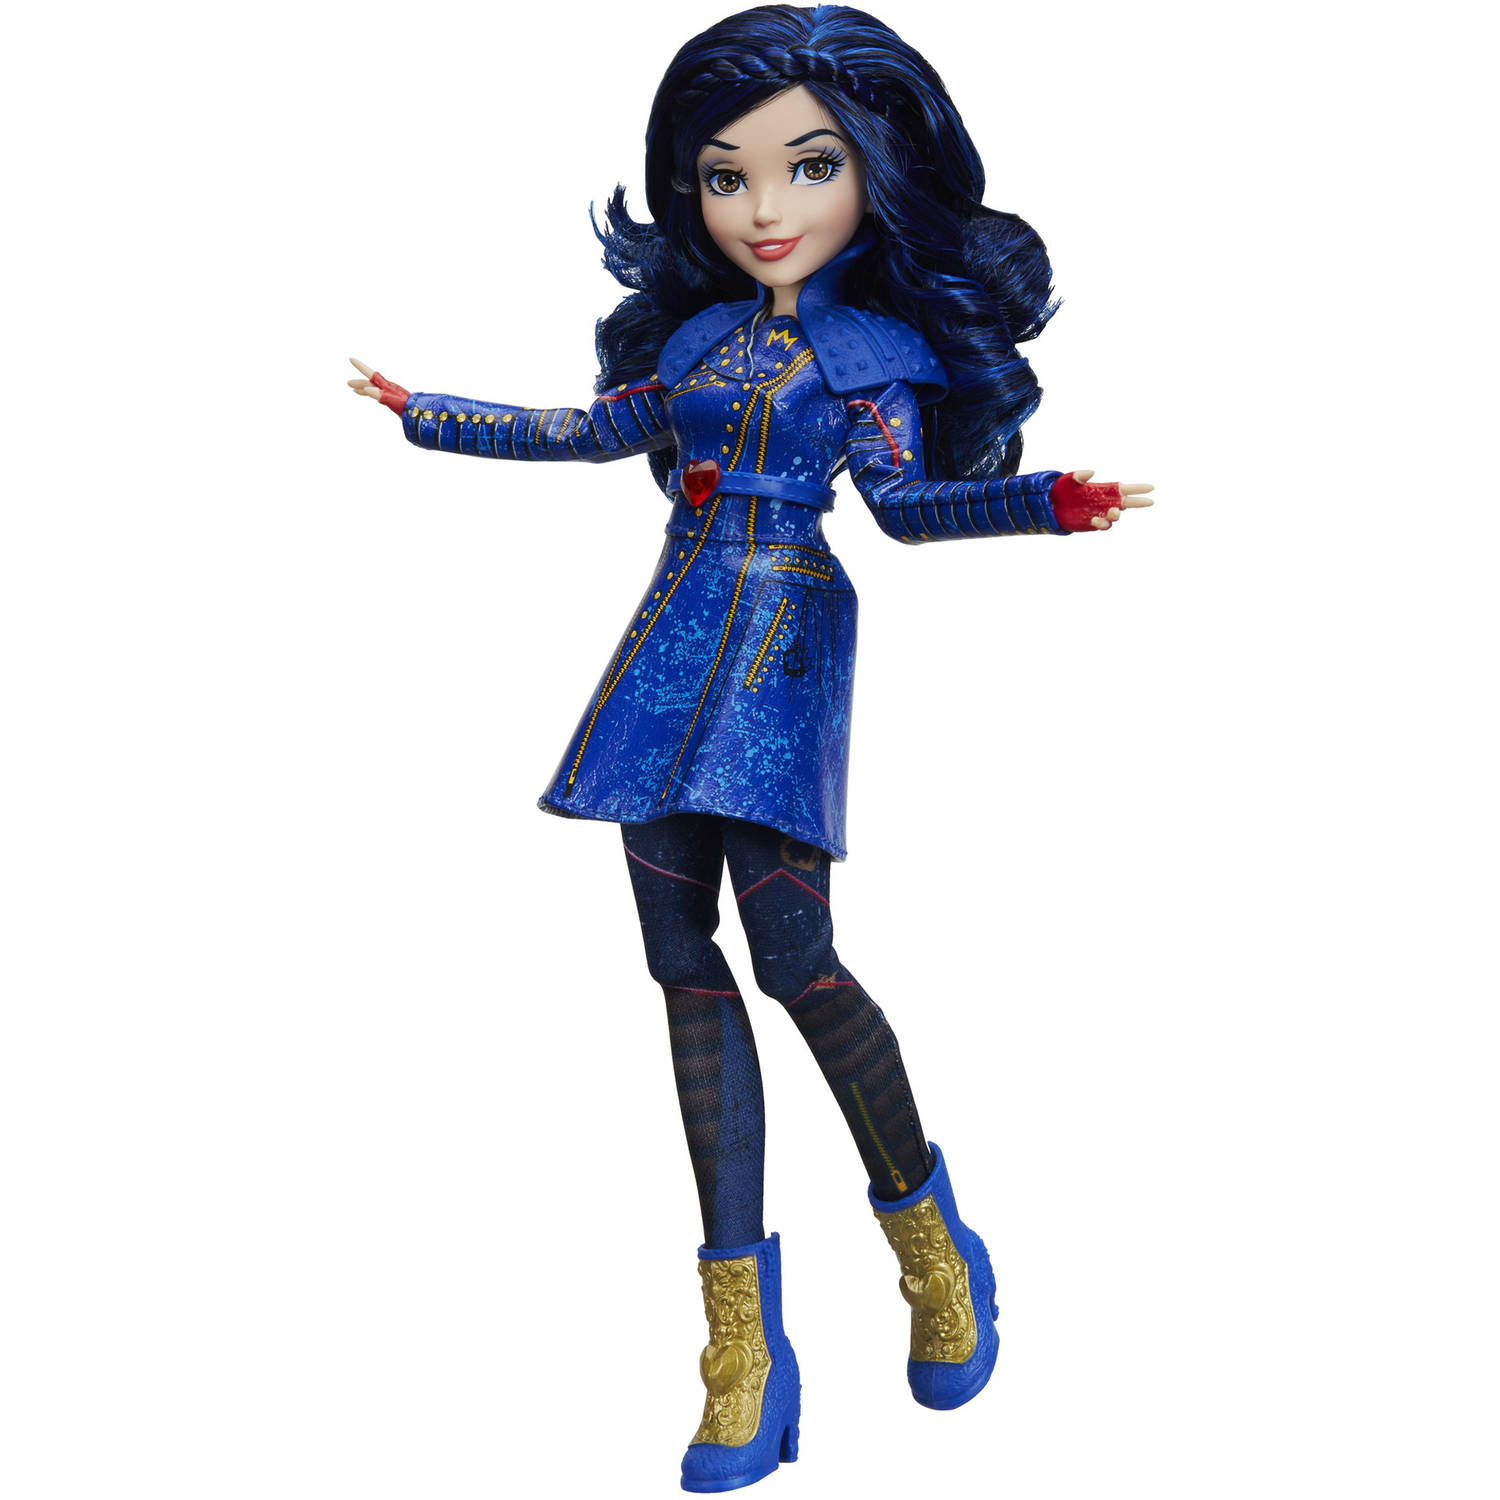 Disney Descendants Evie Isle of the Lost by Hasbro